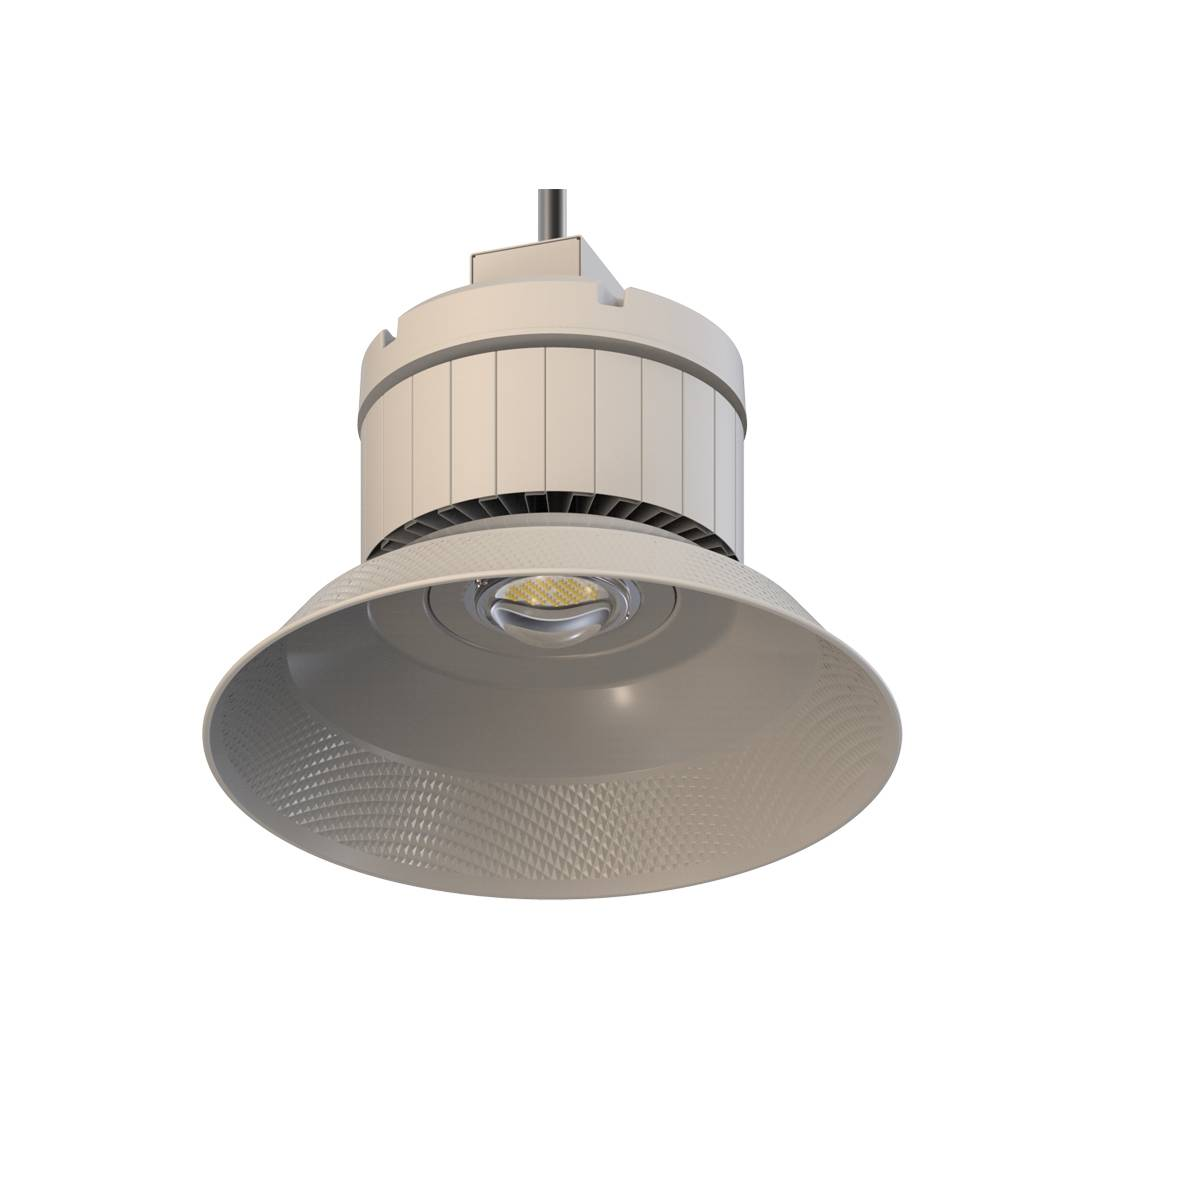 UL CUL DLC SAA CE C tick listed 80W 100W 120W 150W 160W 180W 200W 220W 250W Nano LED highbay light w